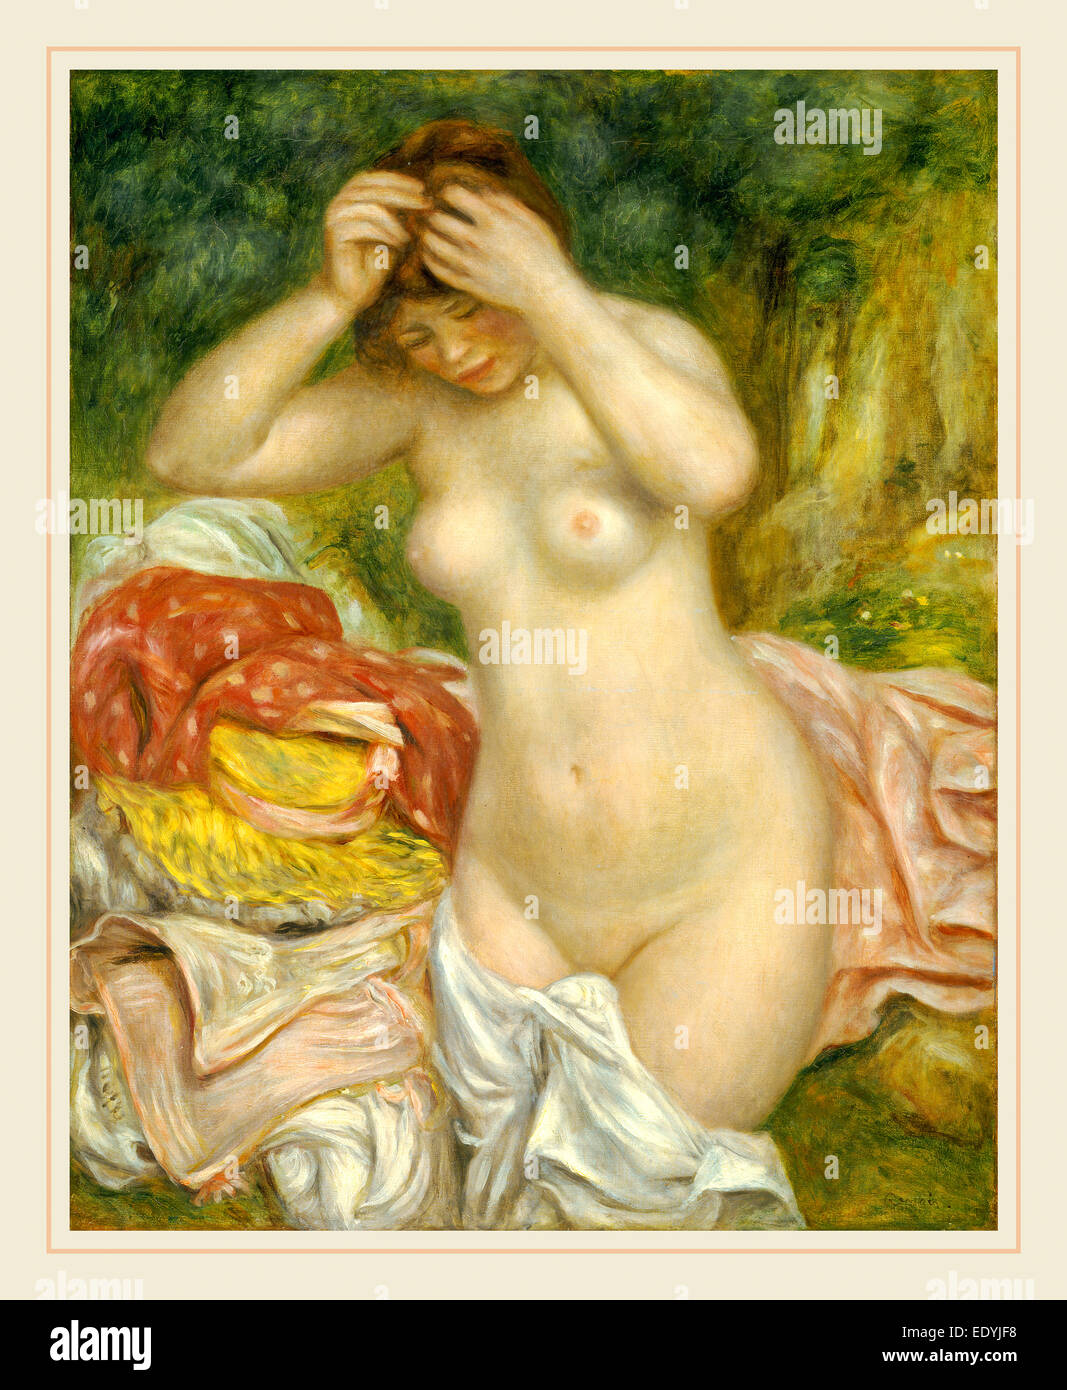 Auguste Renoir, French (1841-1919), Bather Arranging Her Hair, 1893, oil on canvas - Stock Image